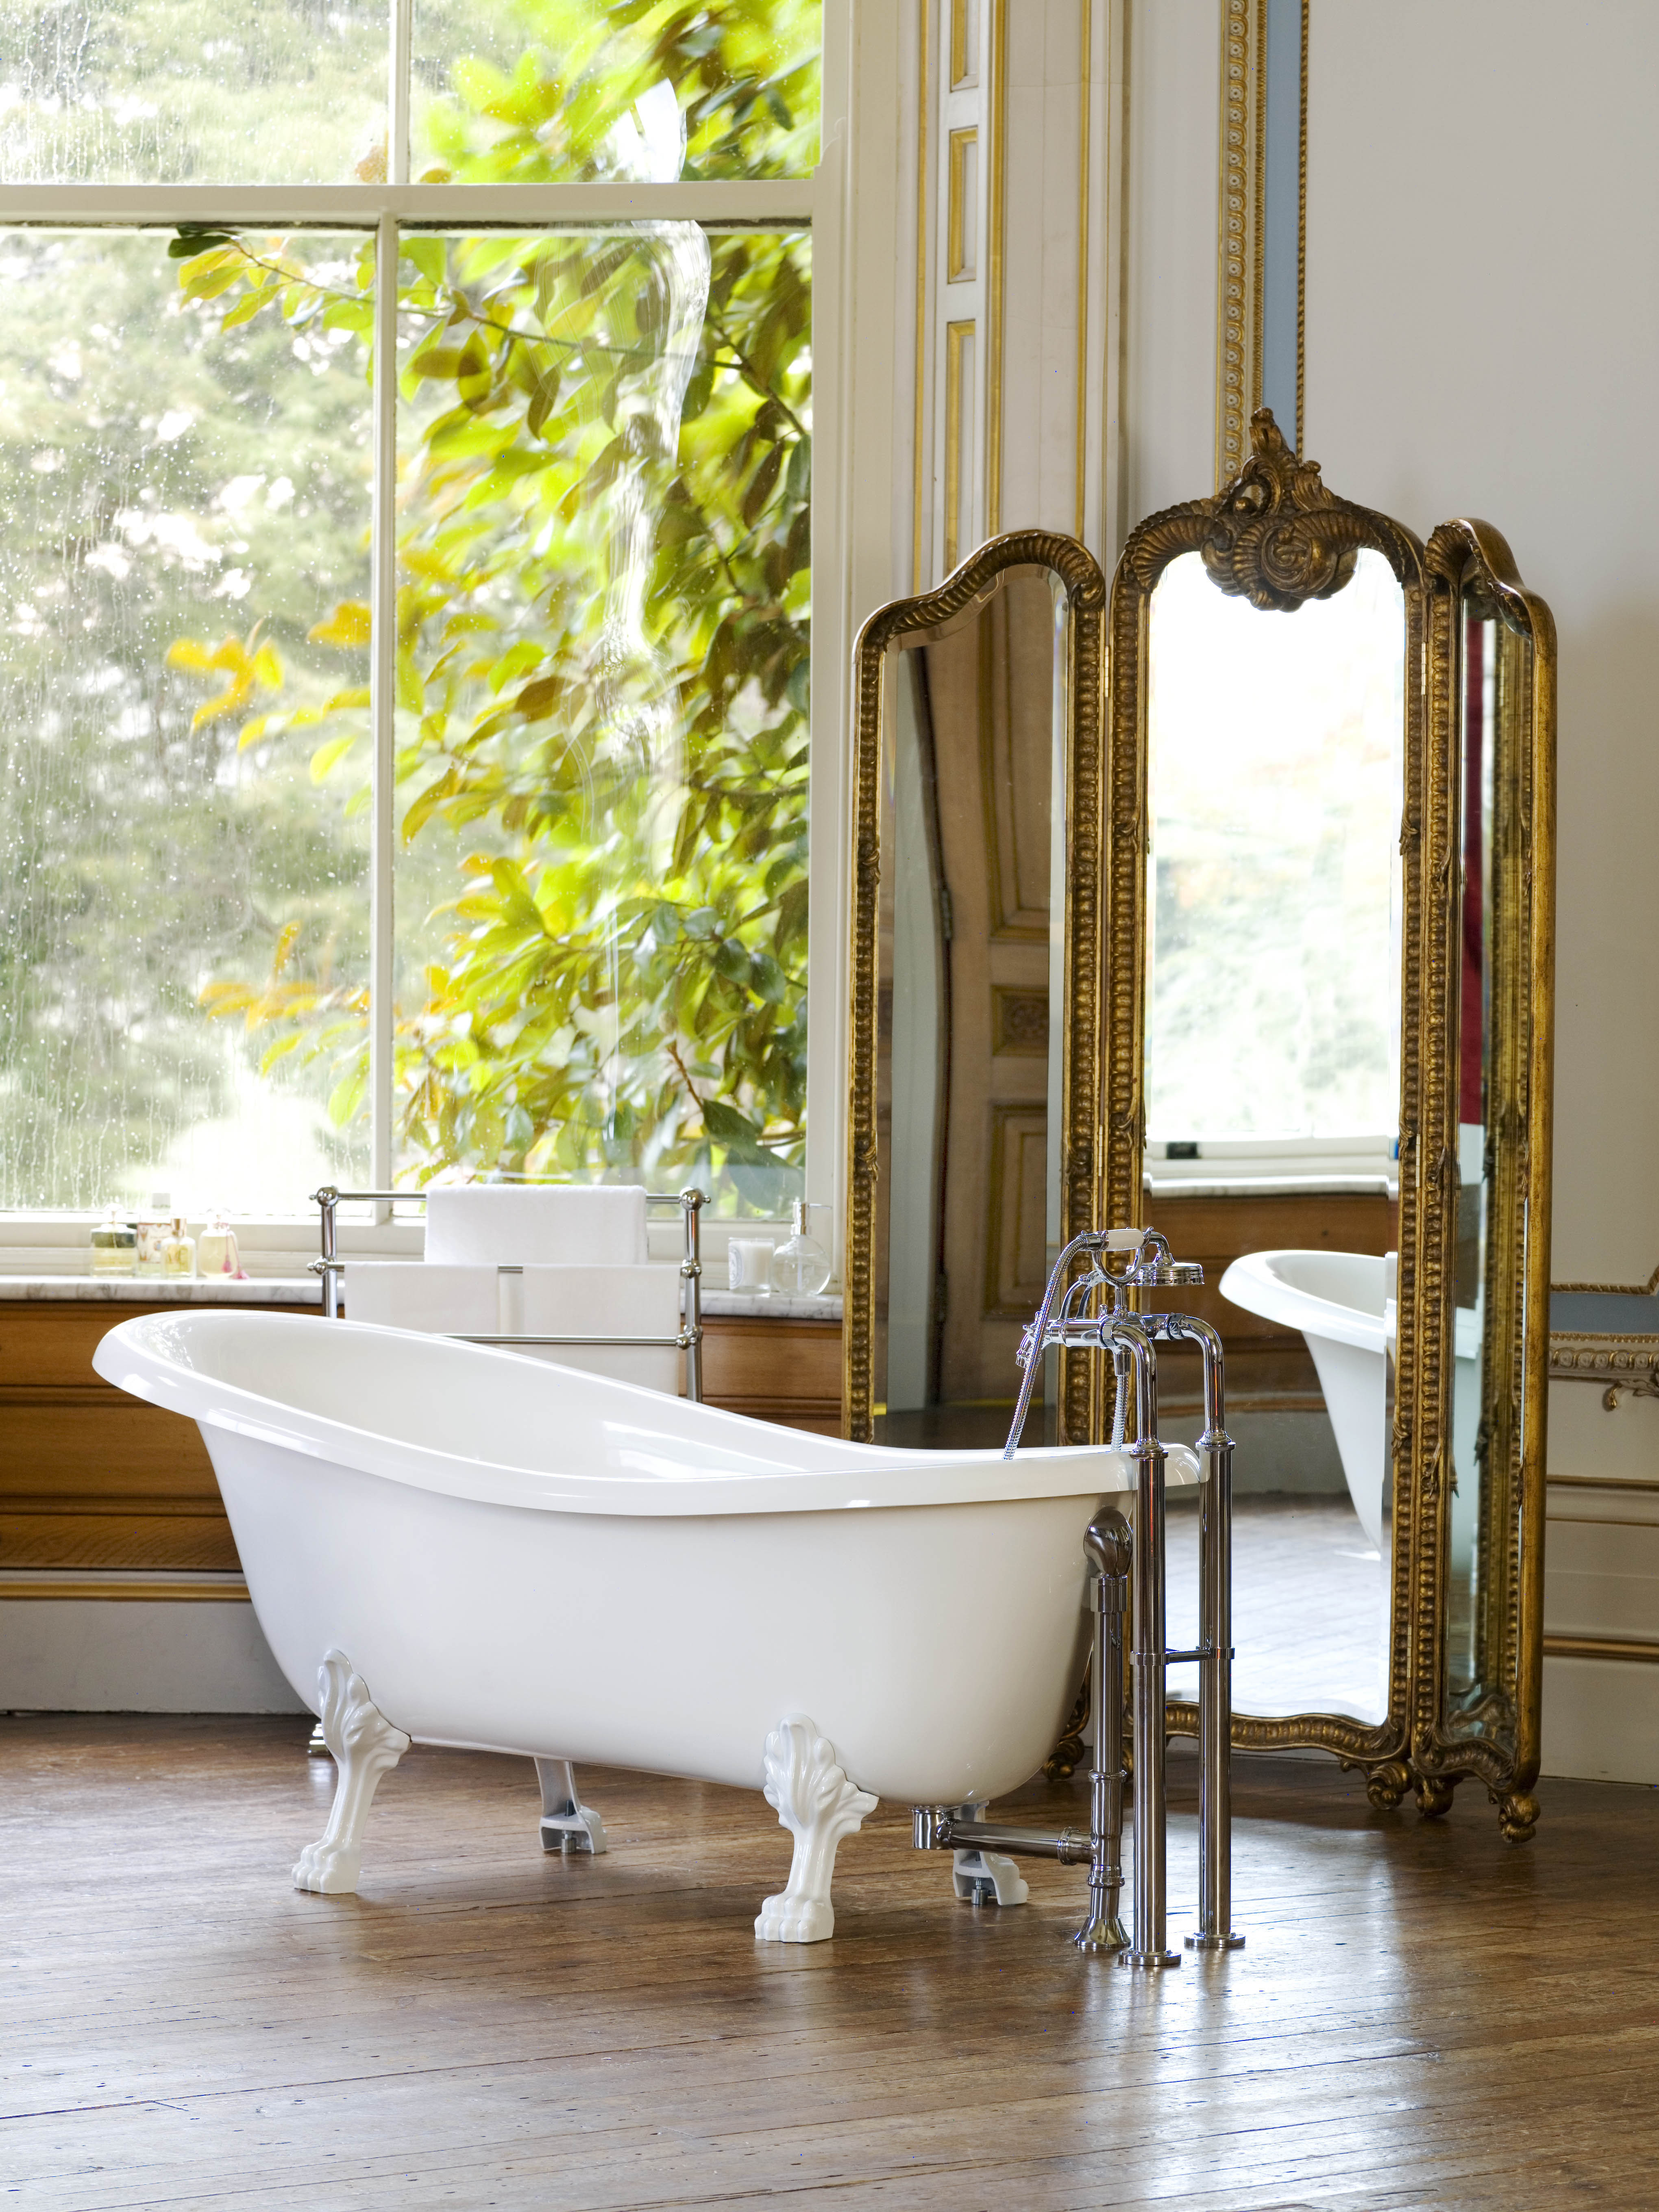 Create your ultimate bathroom with crescent baths kitchens for Bath ultimate